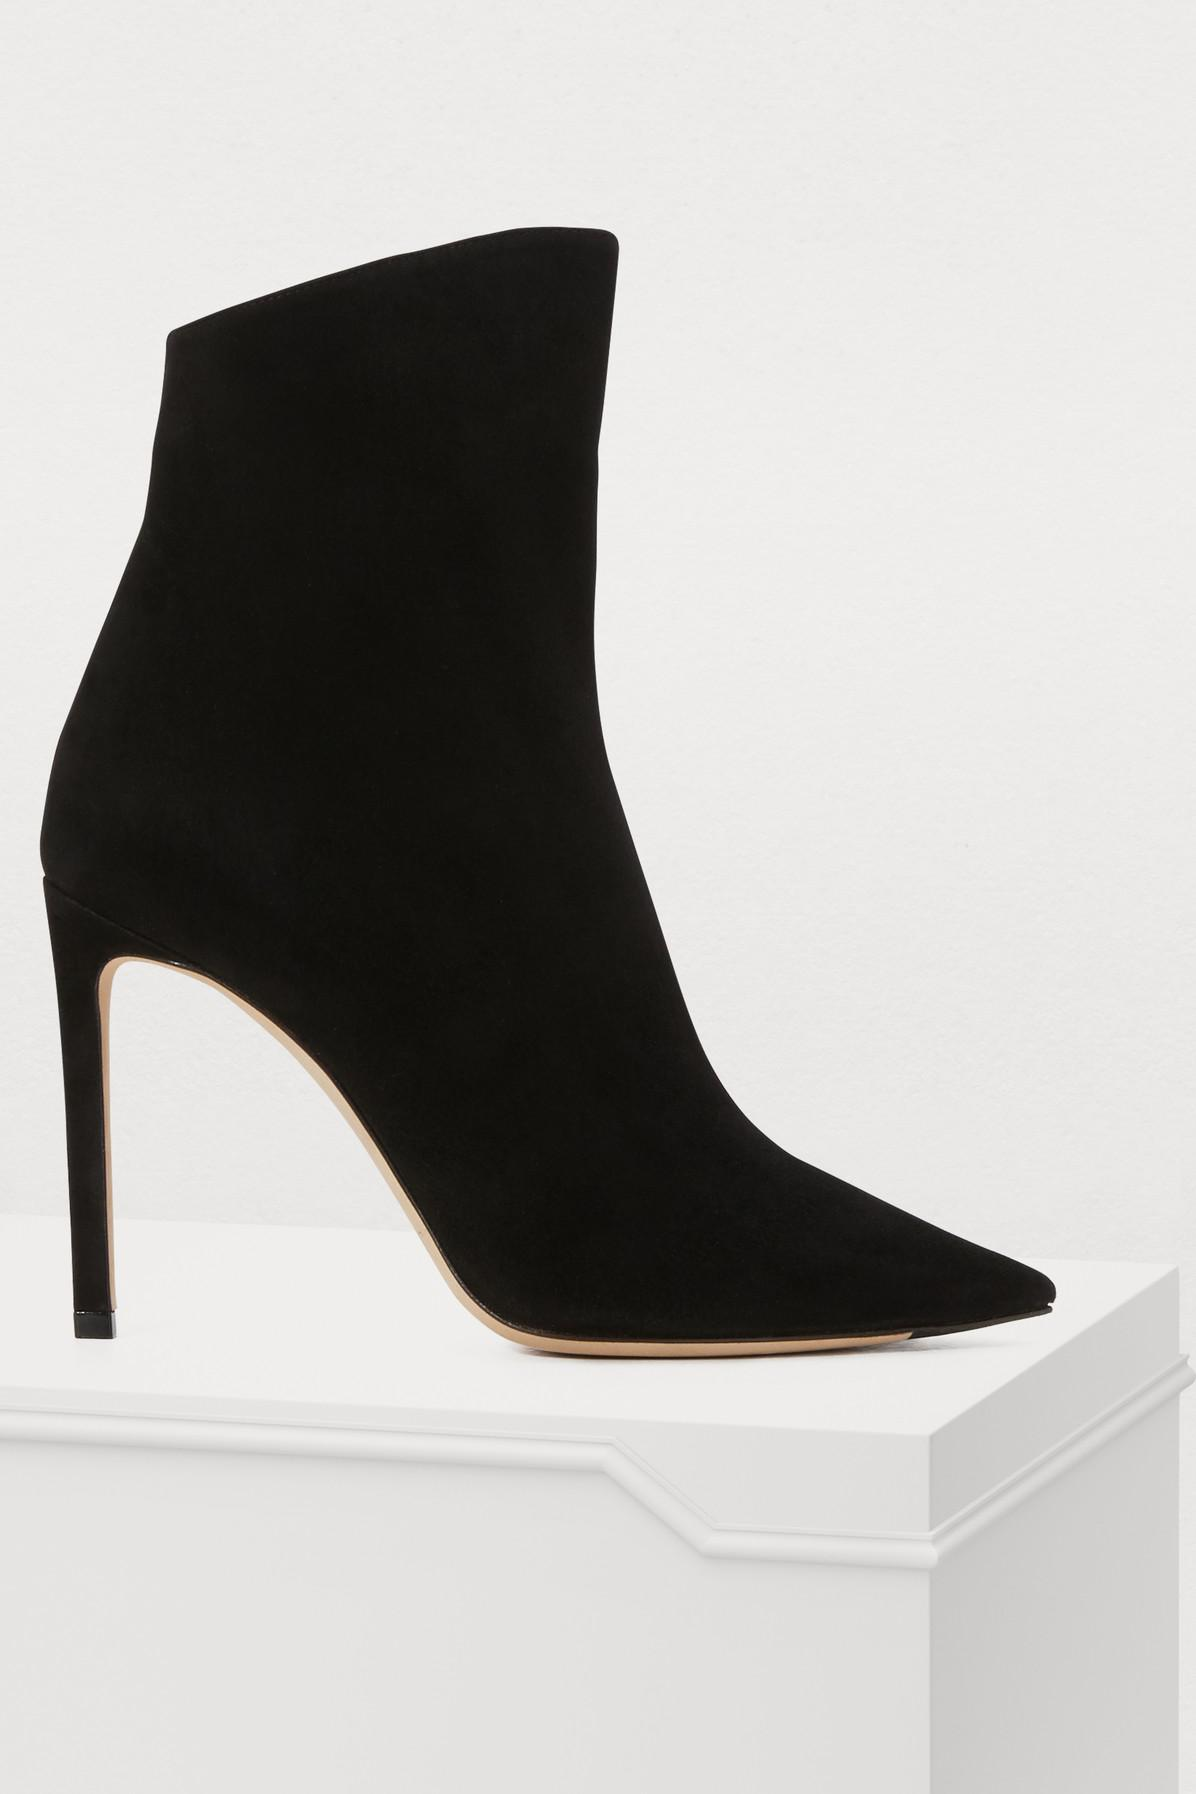 b61c62df0670 Jimmy Choo Helaine 100 Ankle Boots in Black - Lyst